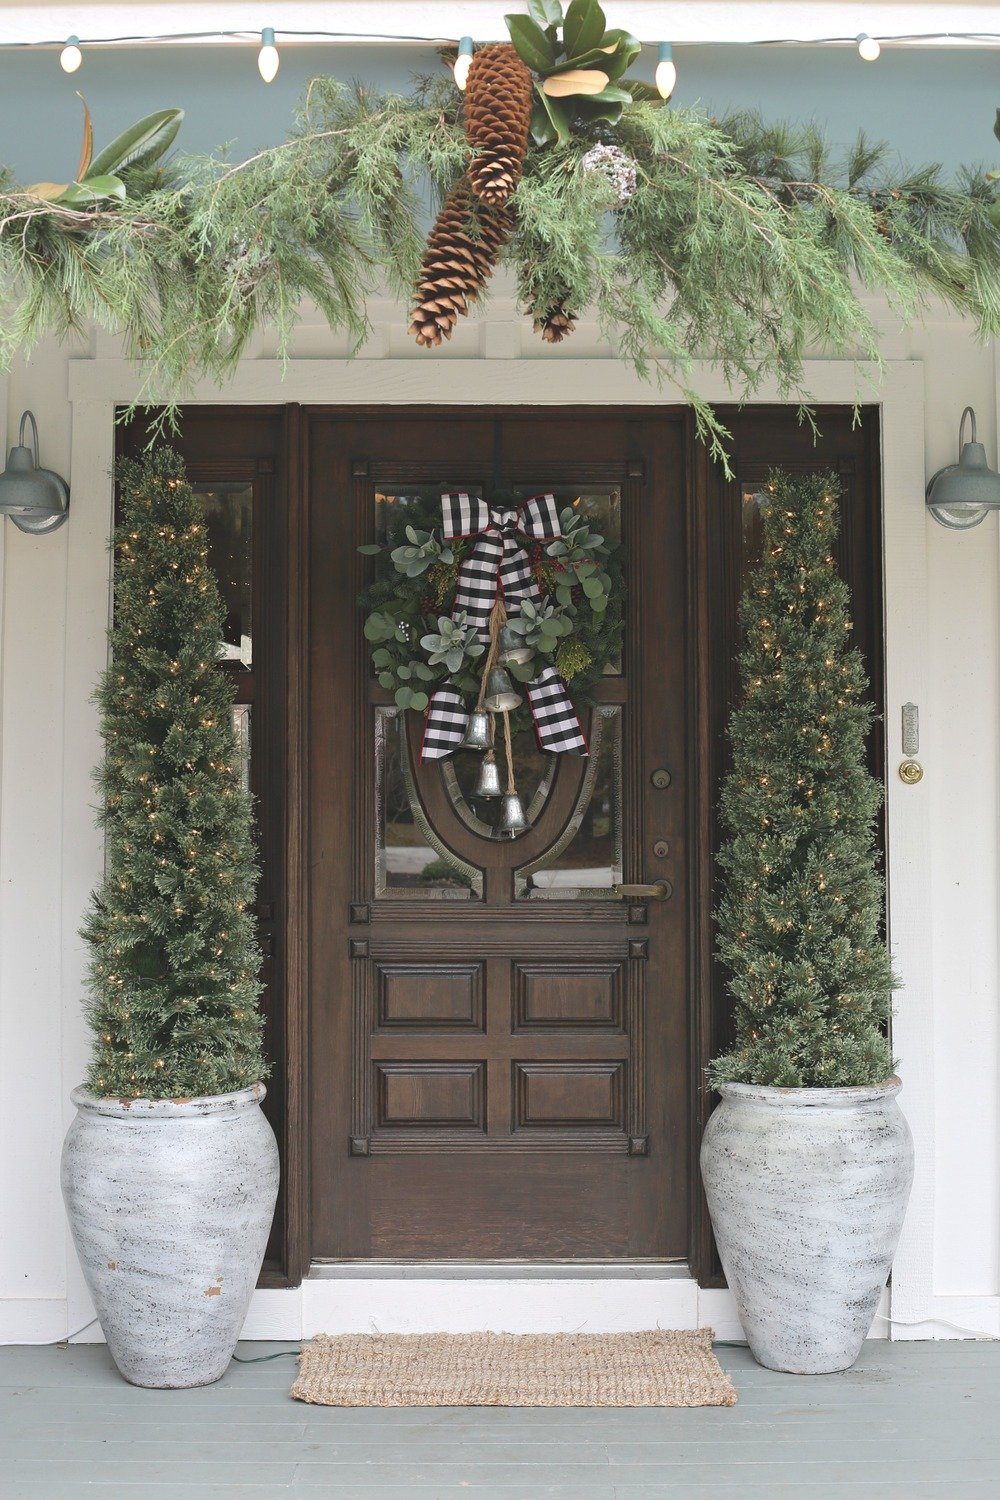 Modern Farmhouse Christmas Front Entry with Wreath.